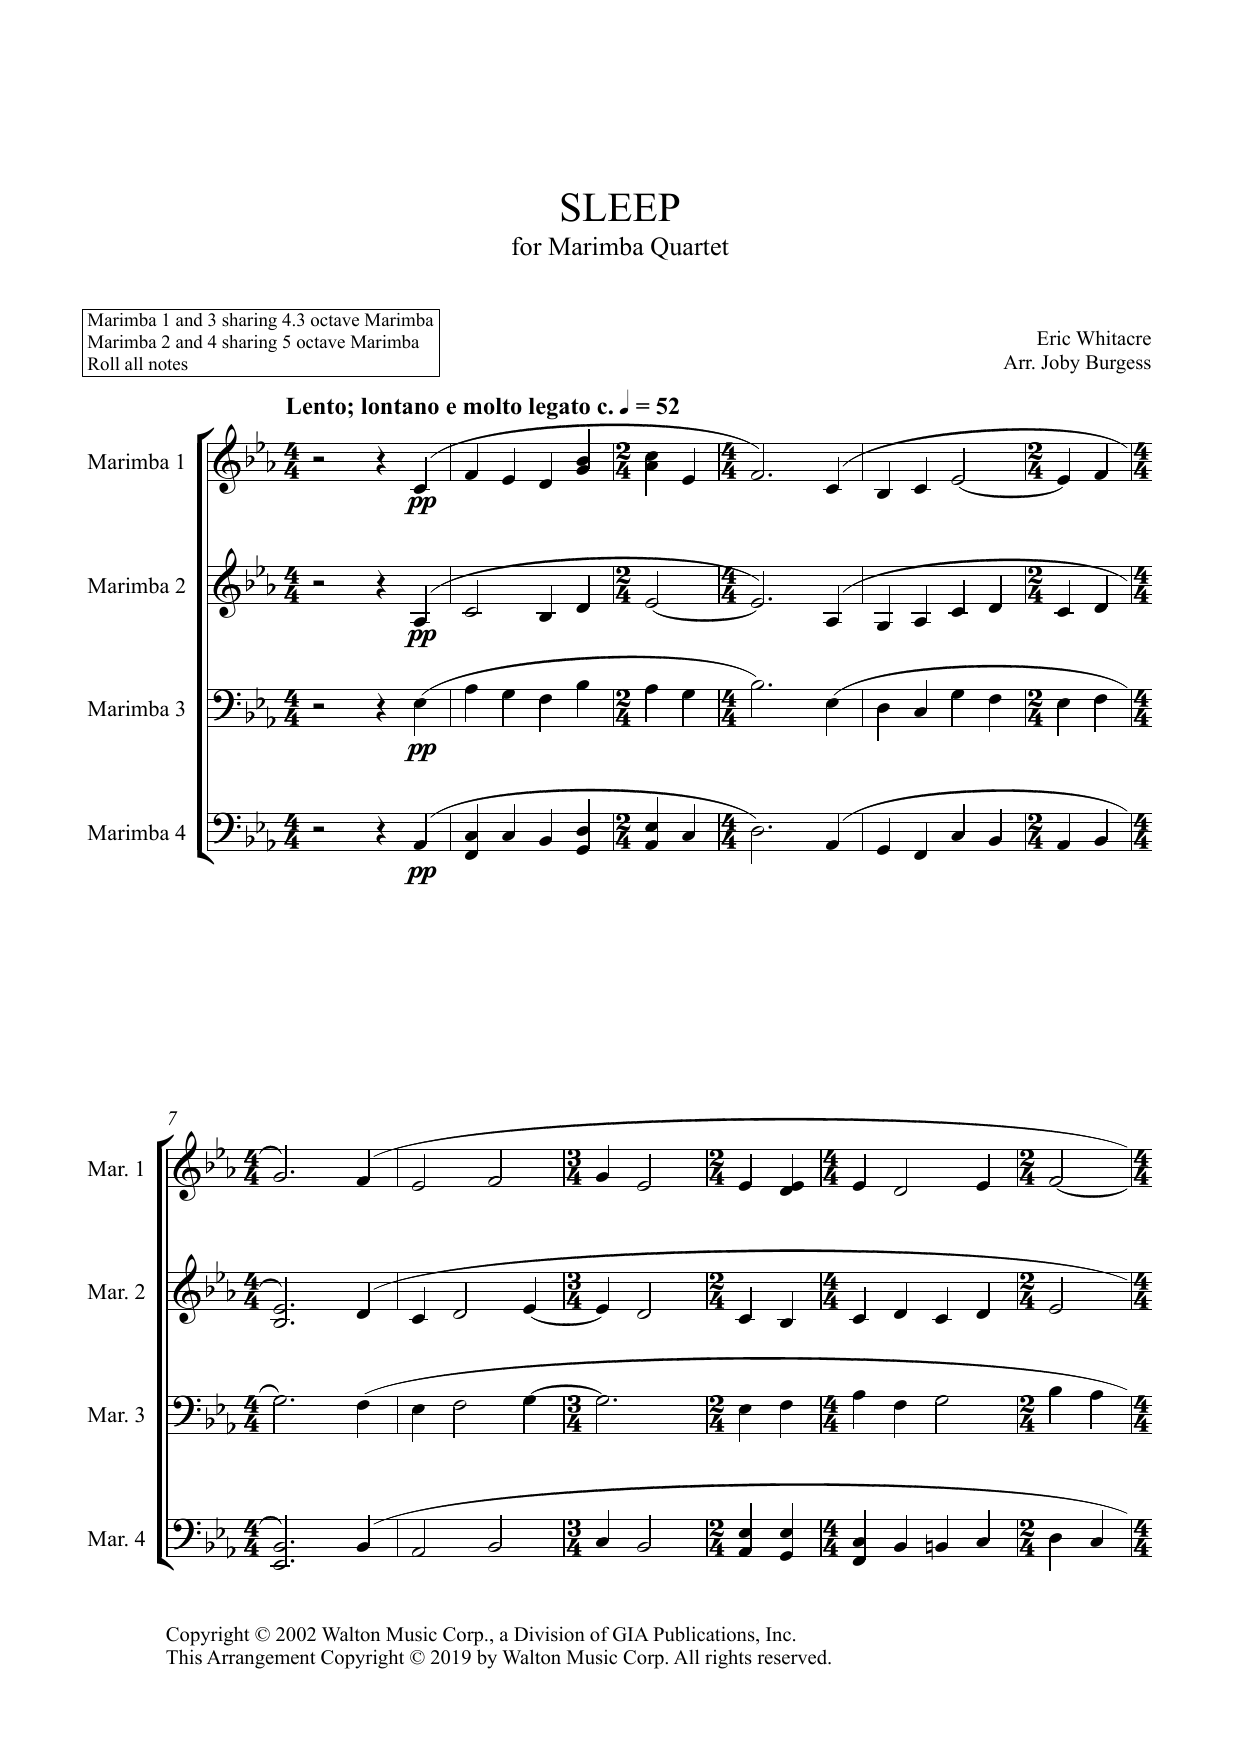 Sleep for Marimba Quartet (arr. Joby Burgess) - Full Score Sheet Music